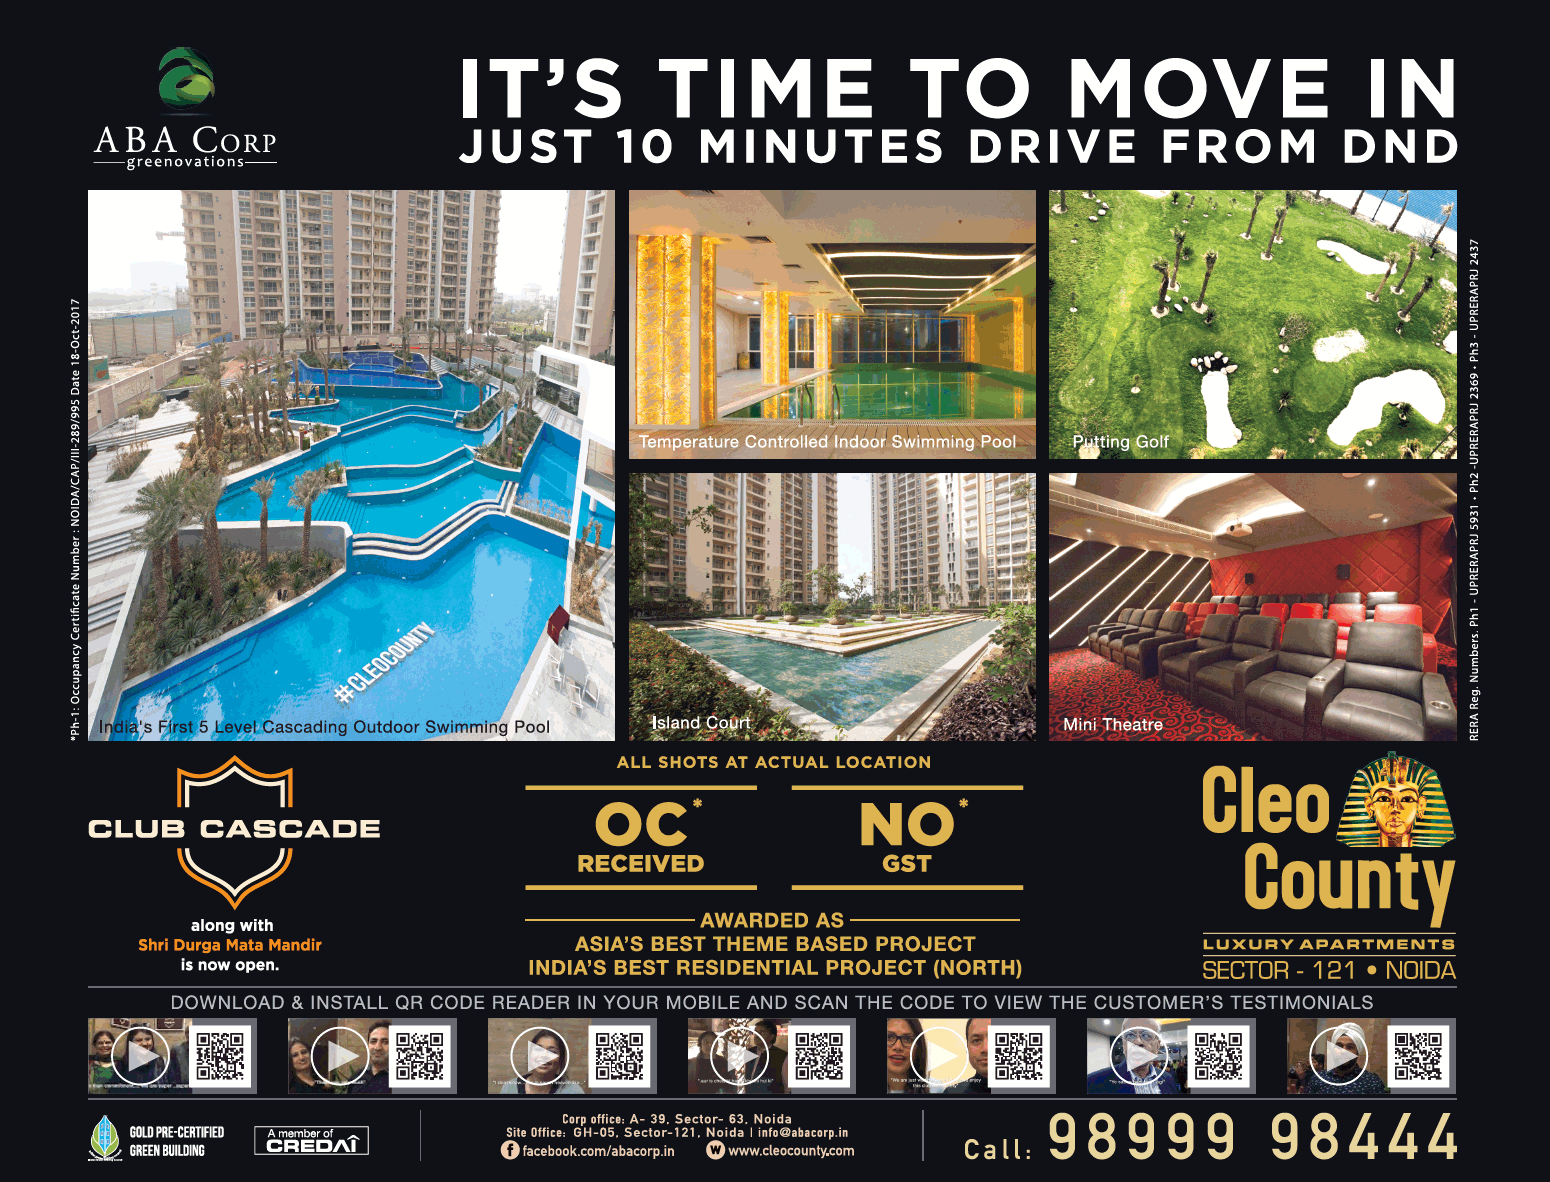 Aba Group Its Time To Move In Just 10 Minutes Drive From Dnd Ad